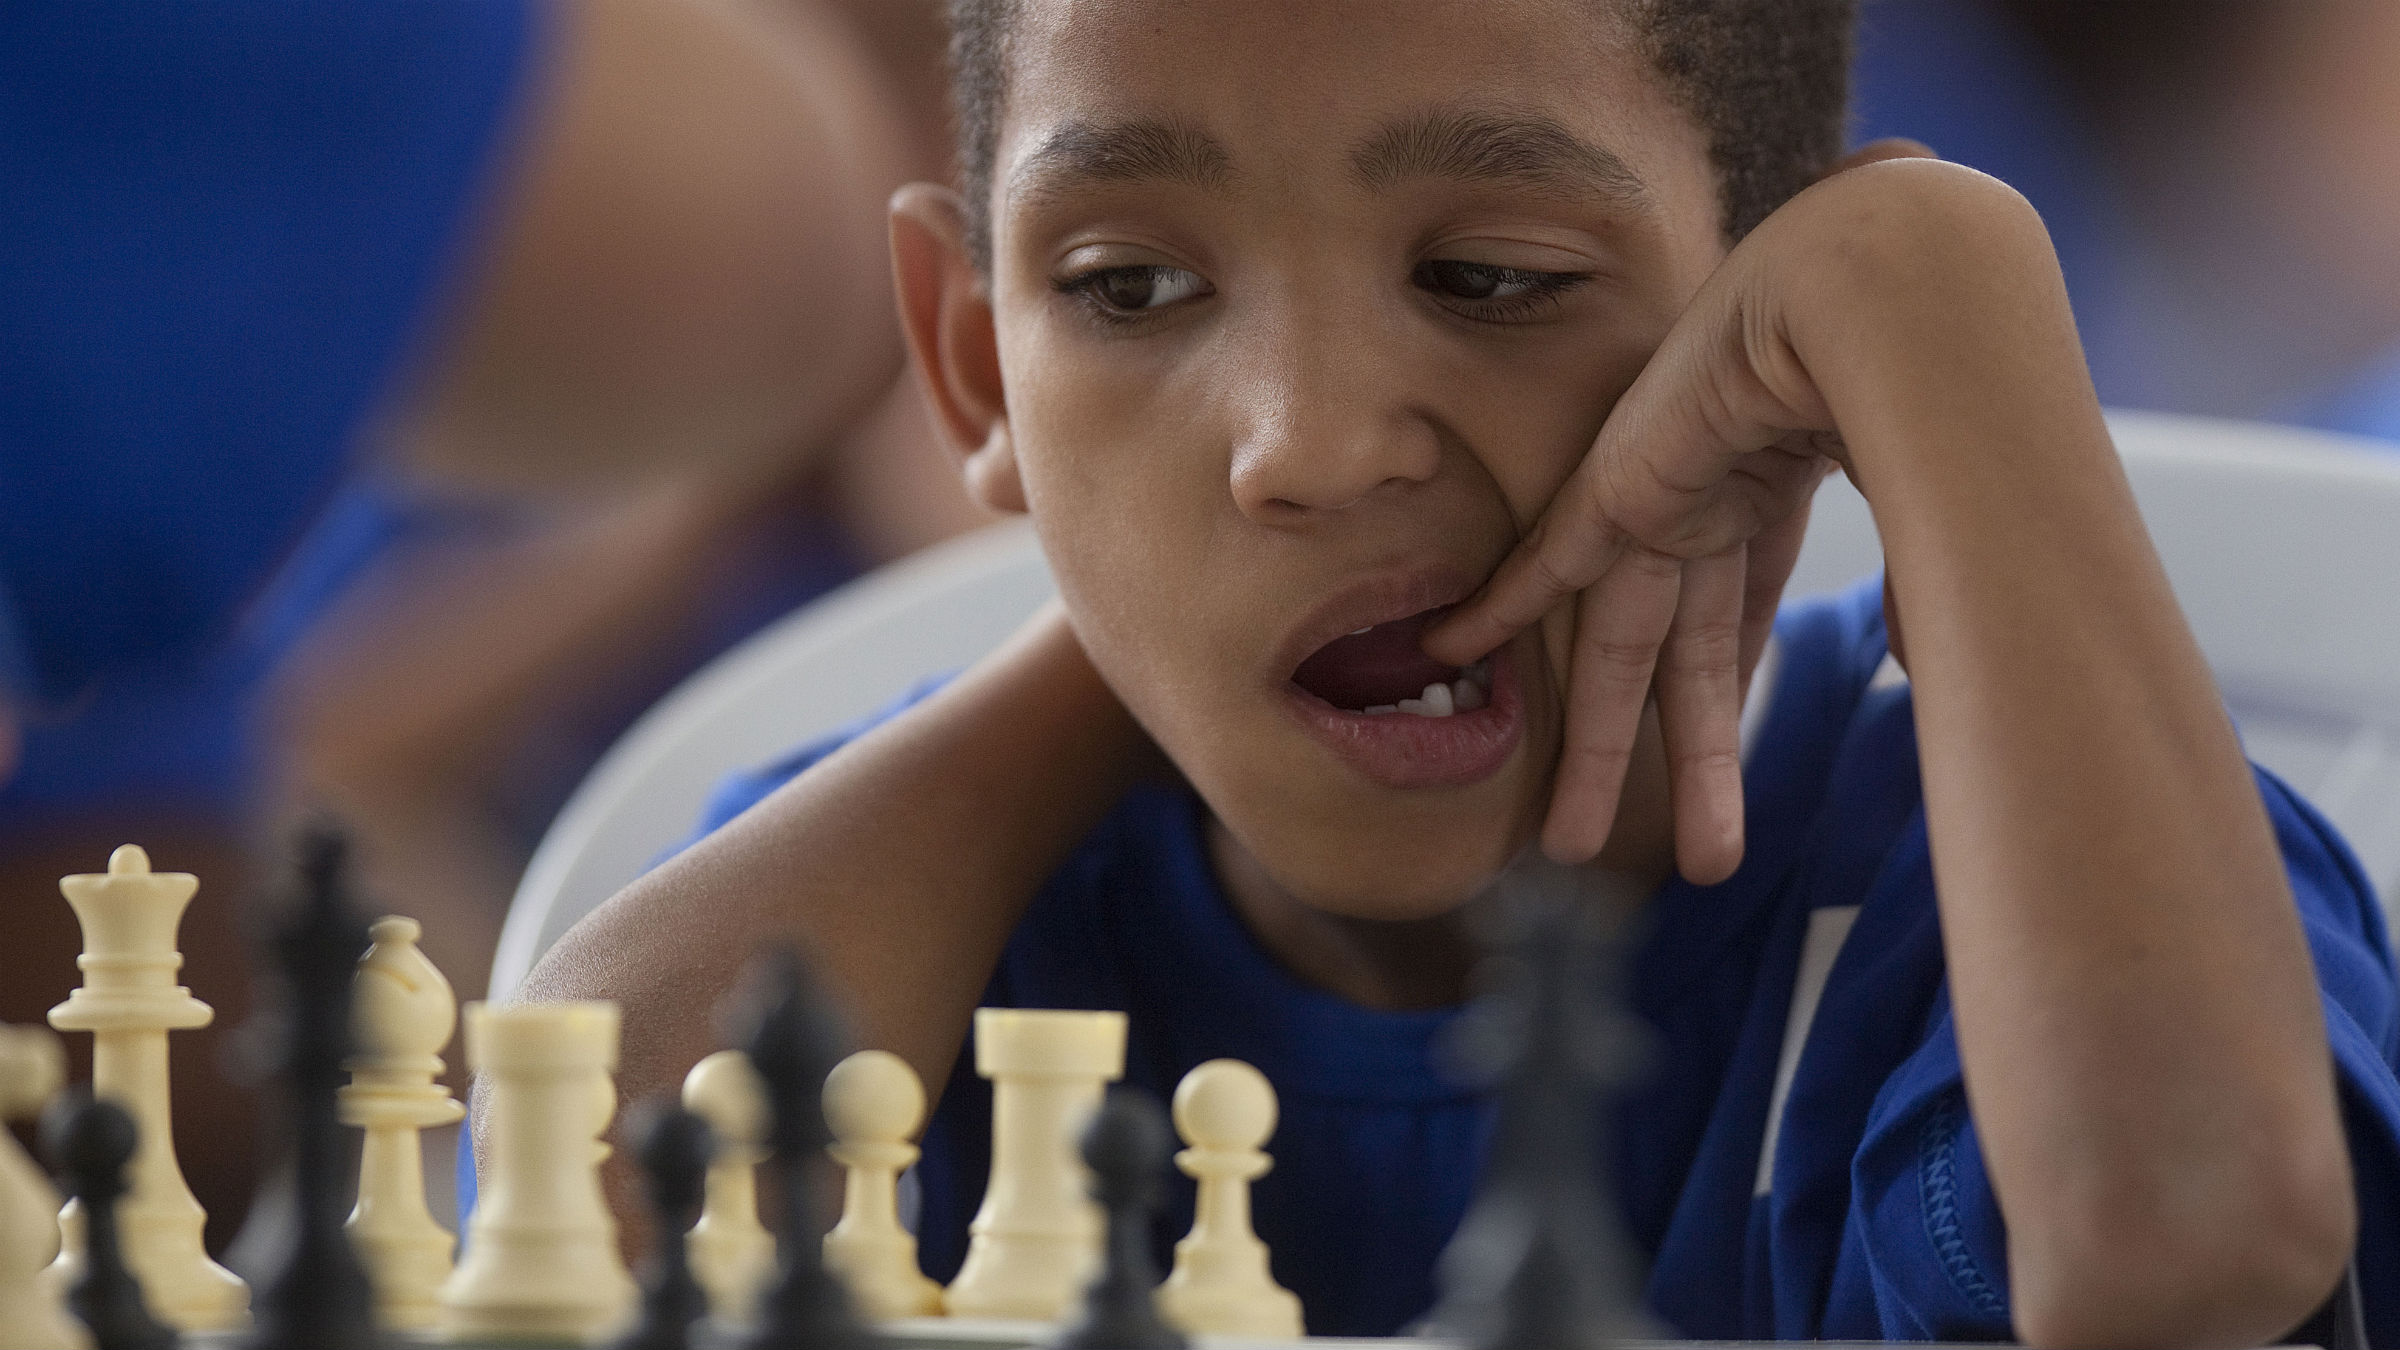 Boy thinks hard while playing chess